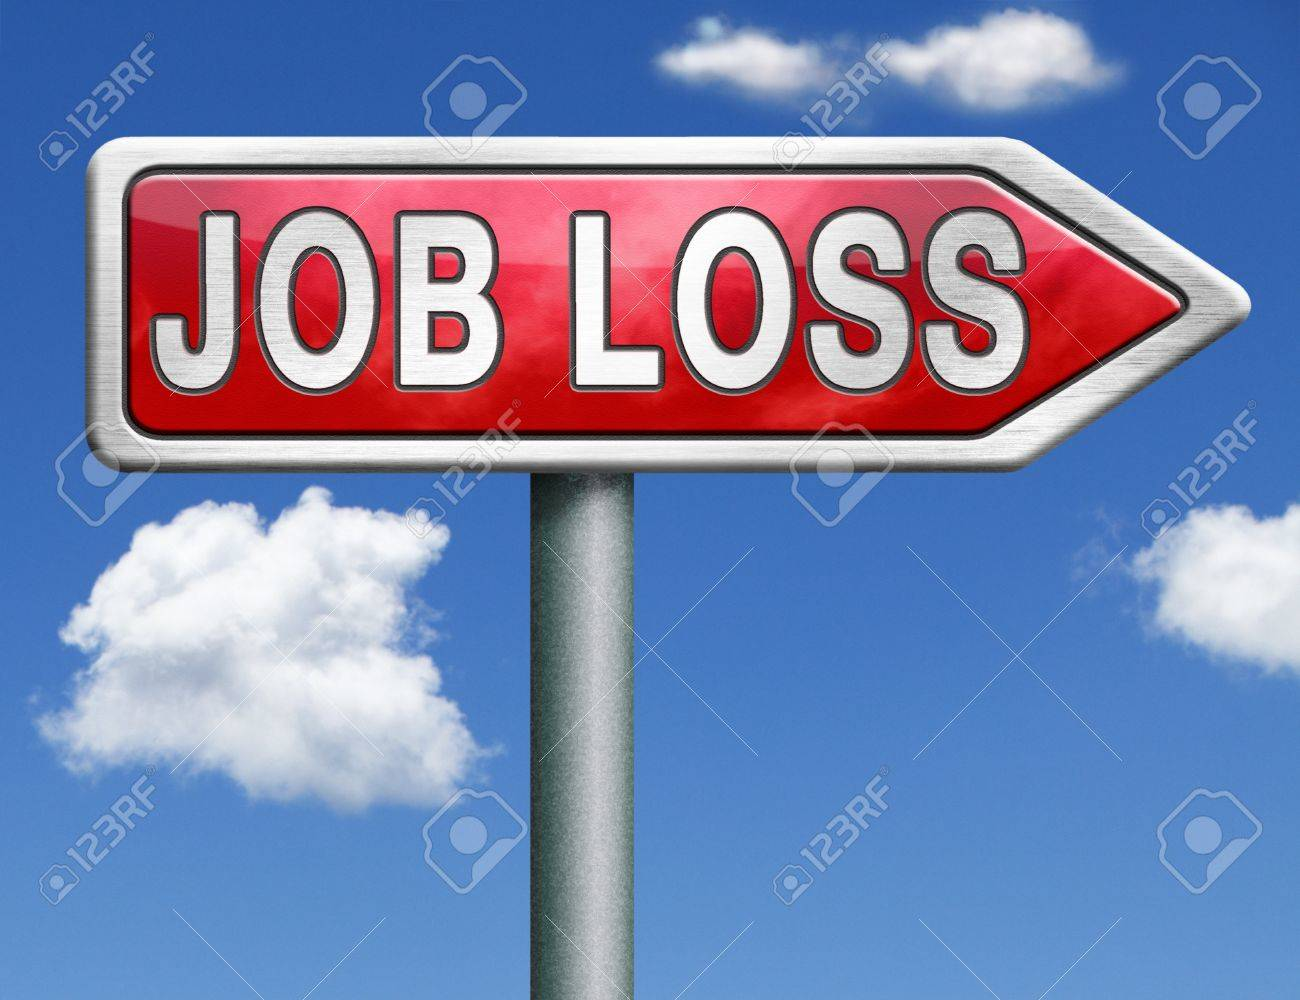 job loss getting fired loose your you re fired losing work jobless stock photo job loss getting fired loose your you re fired losing work jobless